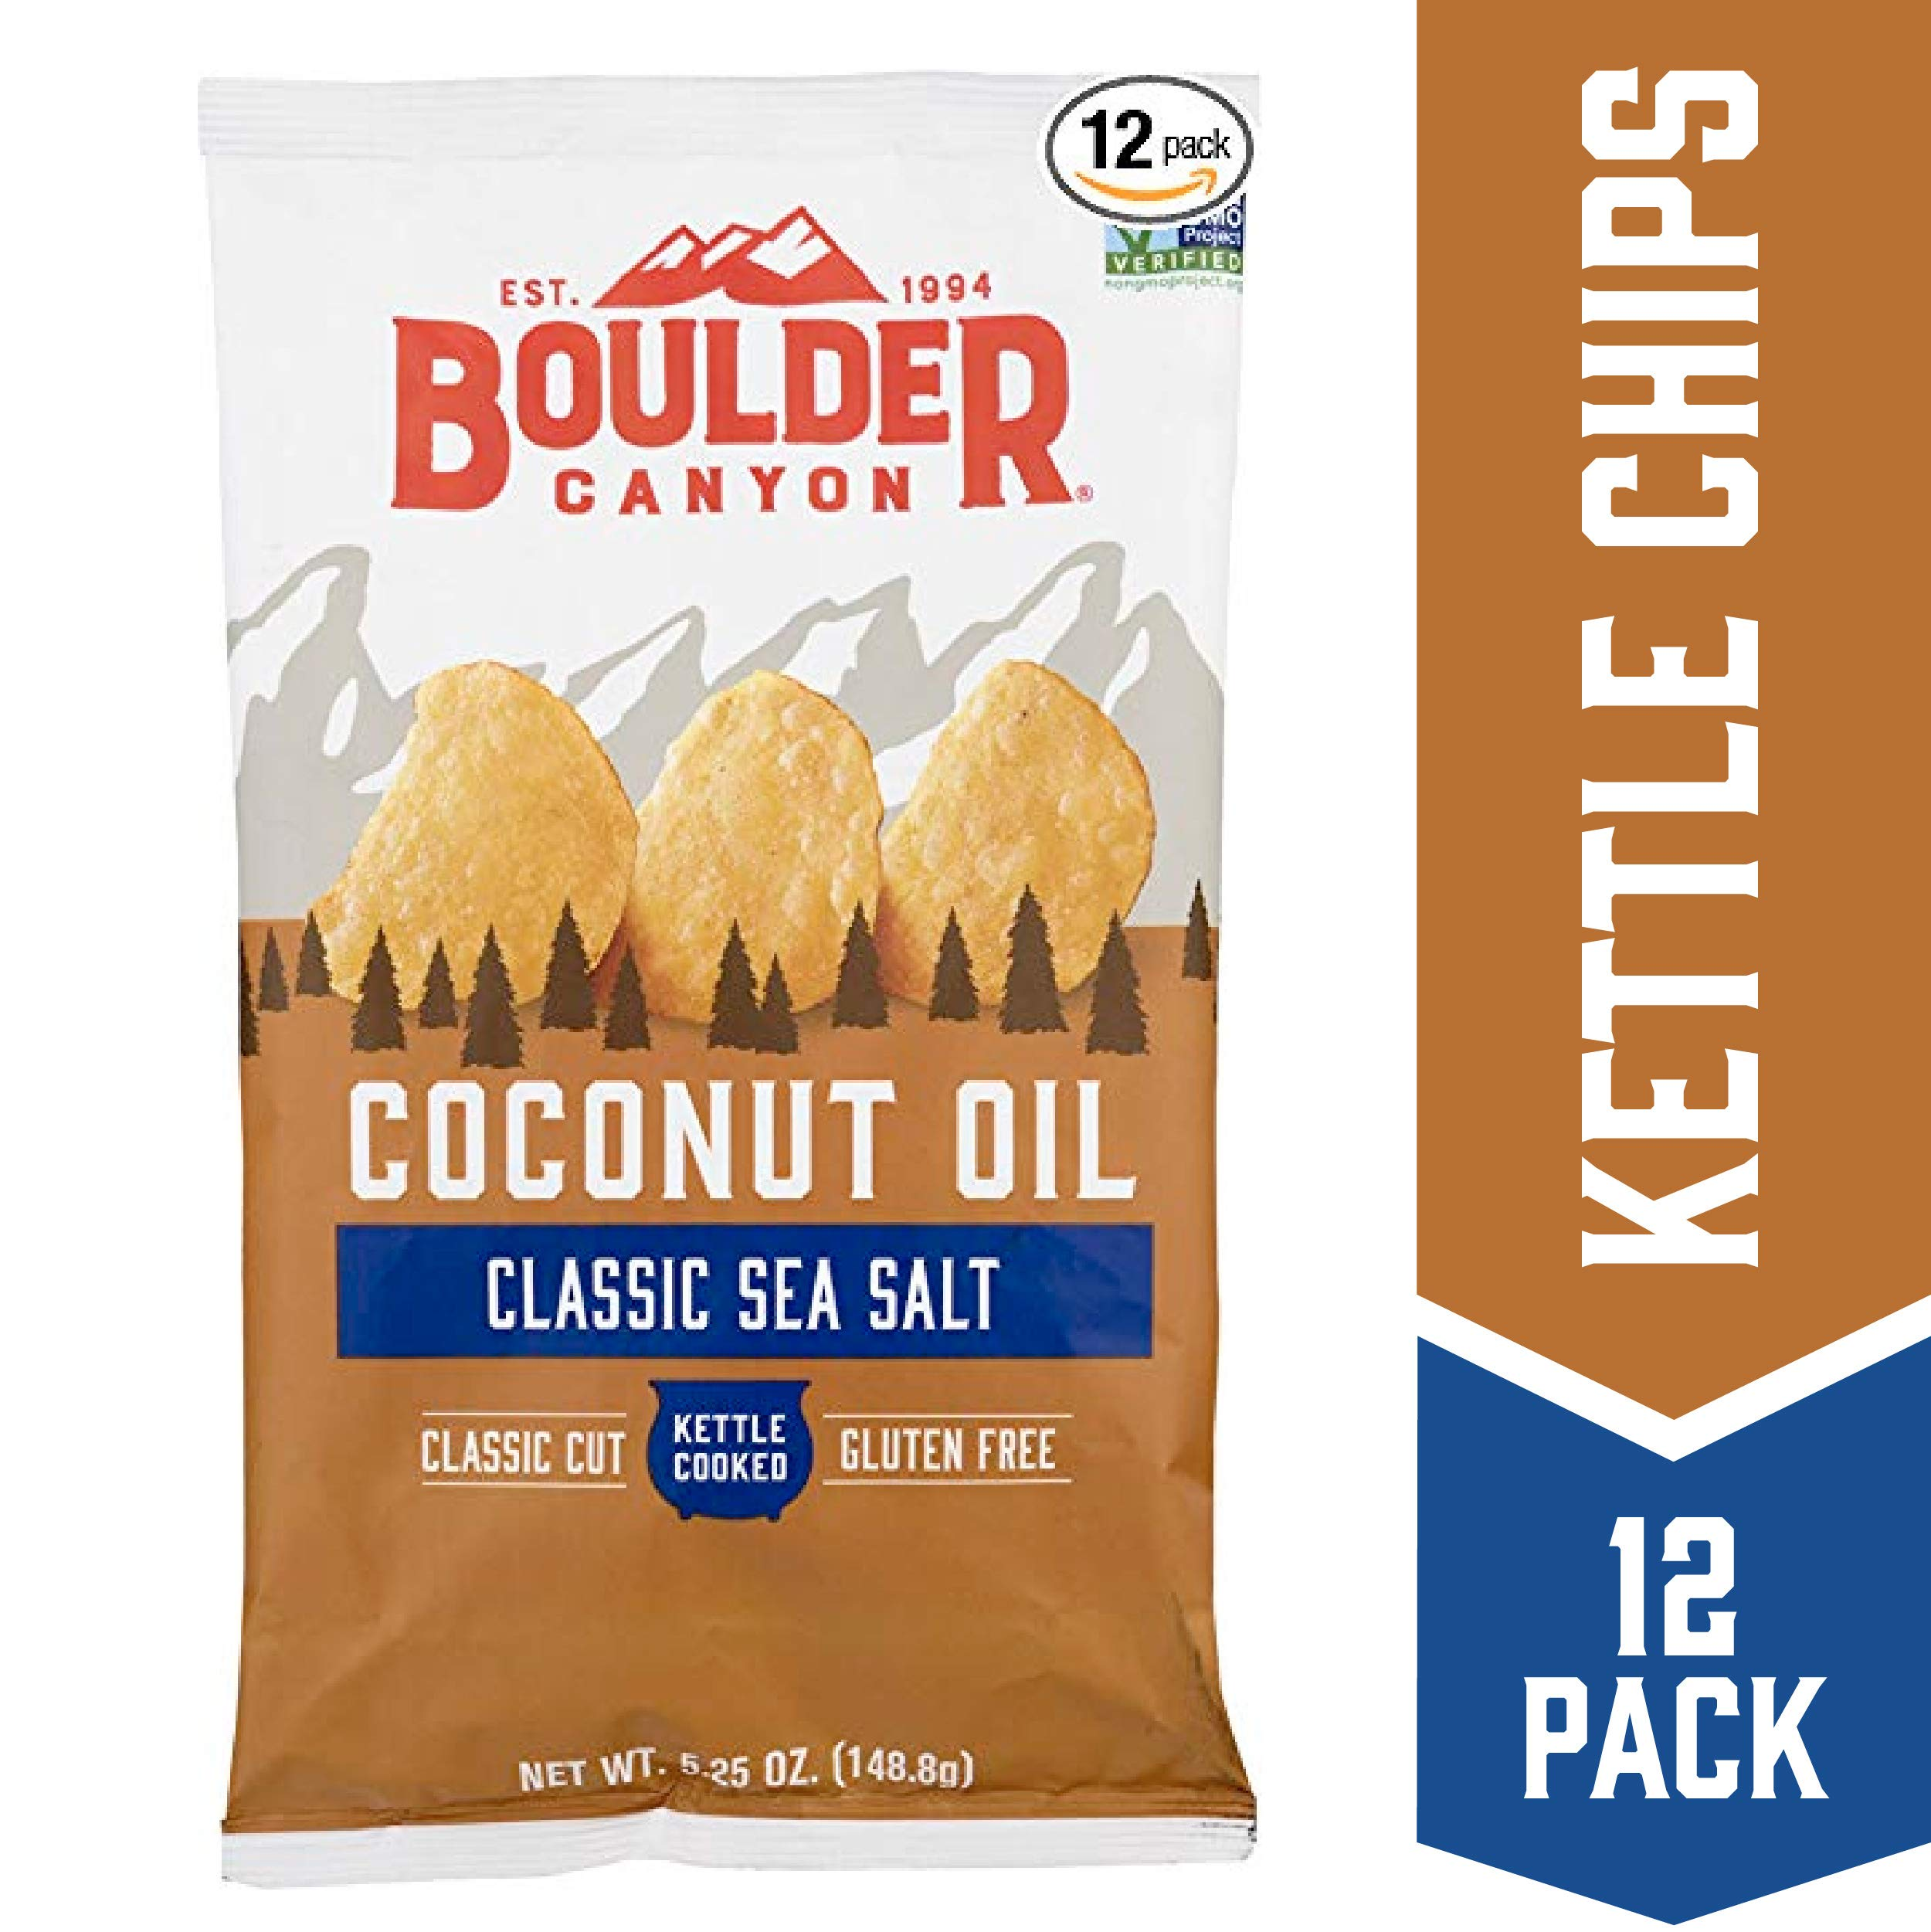 Boulder Canyon Coconut Oil Kettle Cooked Potato Chips, Sea Salt, Gluten Free, Crunchy Chips Cooked in 100% Coconut Oil, Perfect for Dipping, Great for Lunches or Snacks, 5.25 Ounce, Pack of 12 by Boulder Canyon